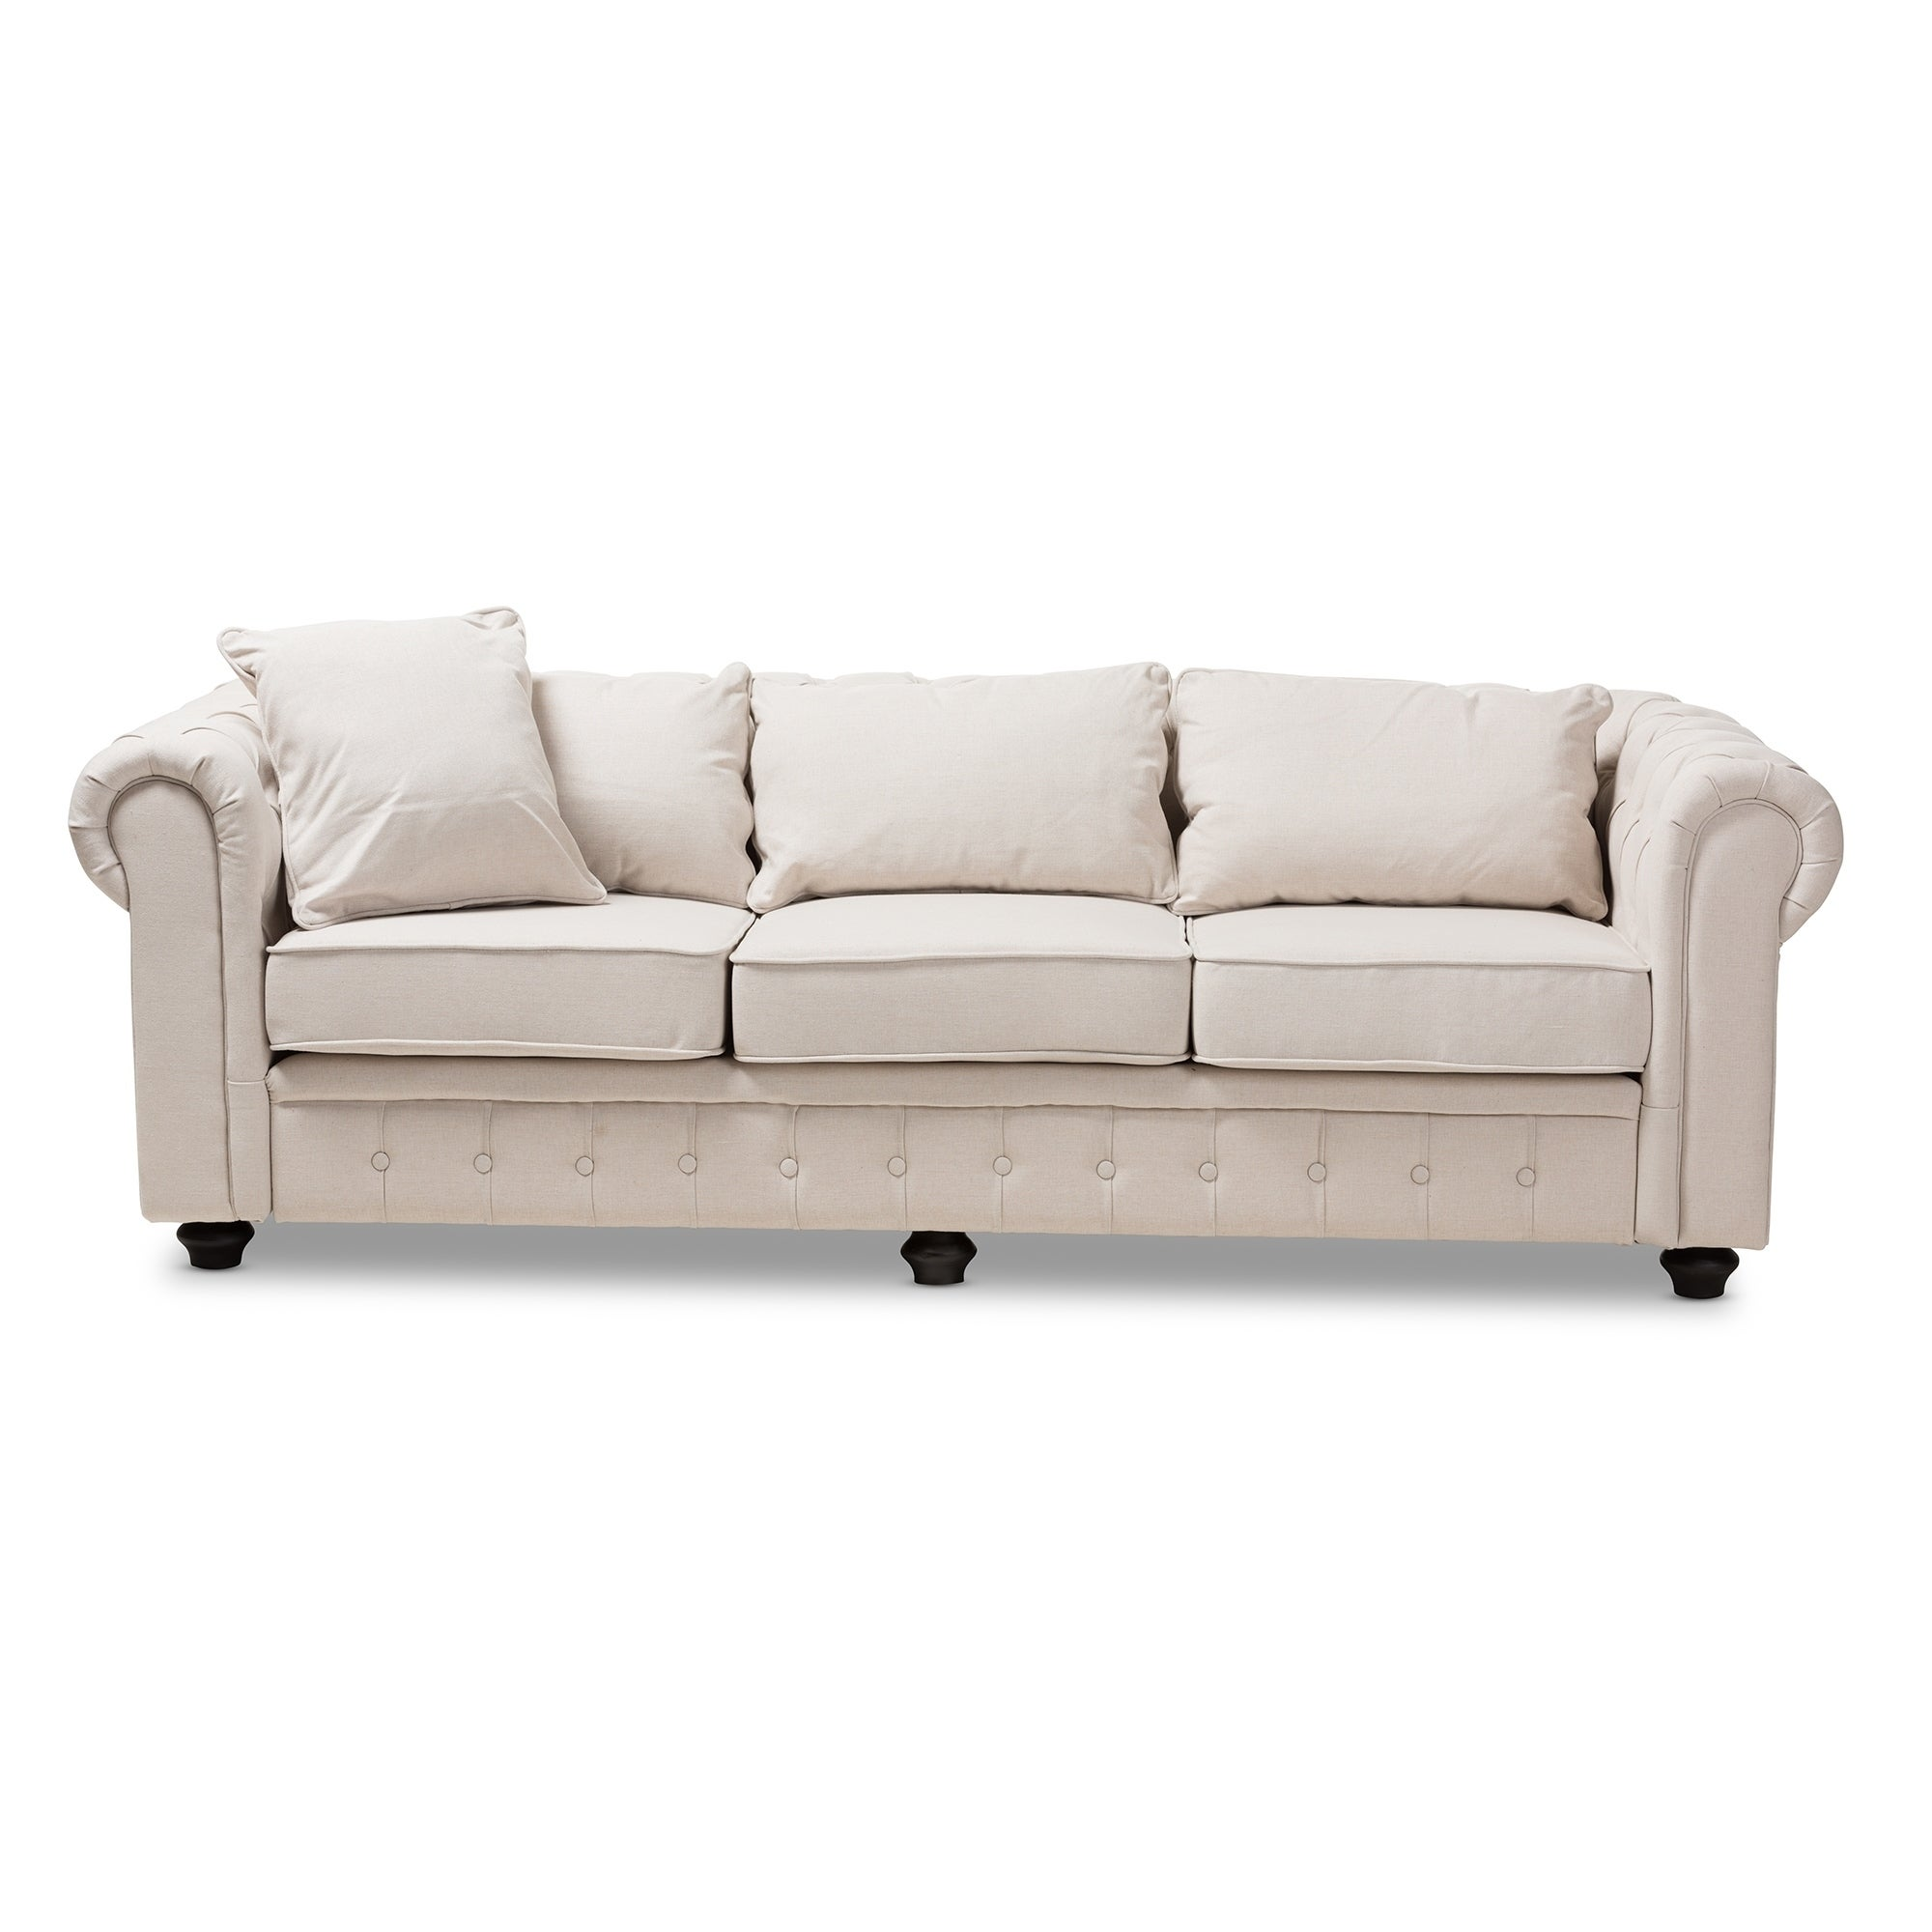 Modern Linen Chesterfield Sofa By Baxton Studio